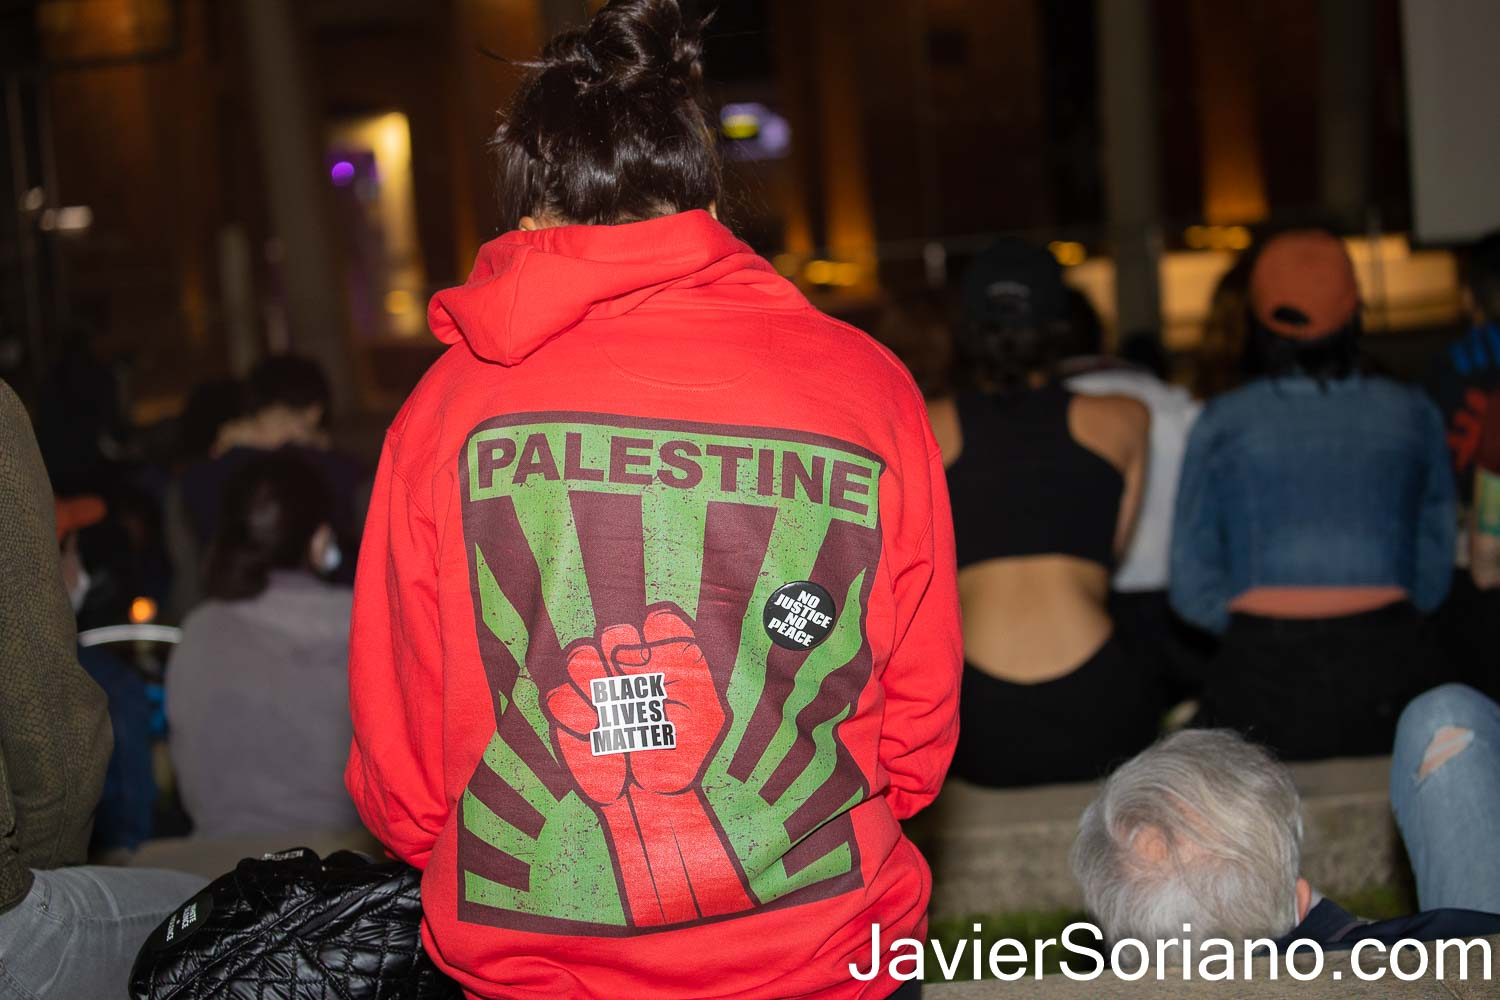 Tuesday, May 25, 2021. Brooklyn, New York City - On the one year anniversary of the murder of George Floyd, some people held a remembrance vigil at the Brooklyn Museum.  THIS PHOTO: Woman wearing a PALESTINE / Black Lives Matter sweater hoodie.  Photo by Javier Soriano/www.JavierSoriano.com